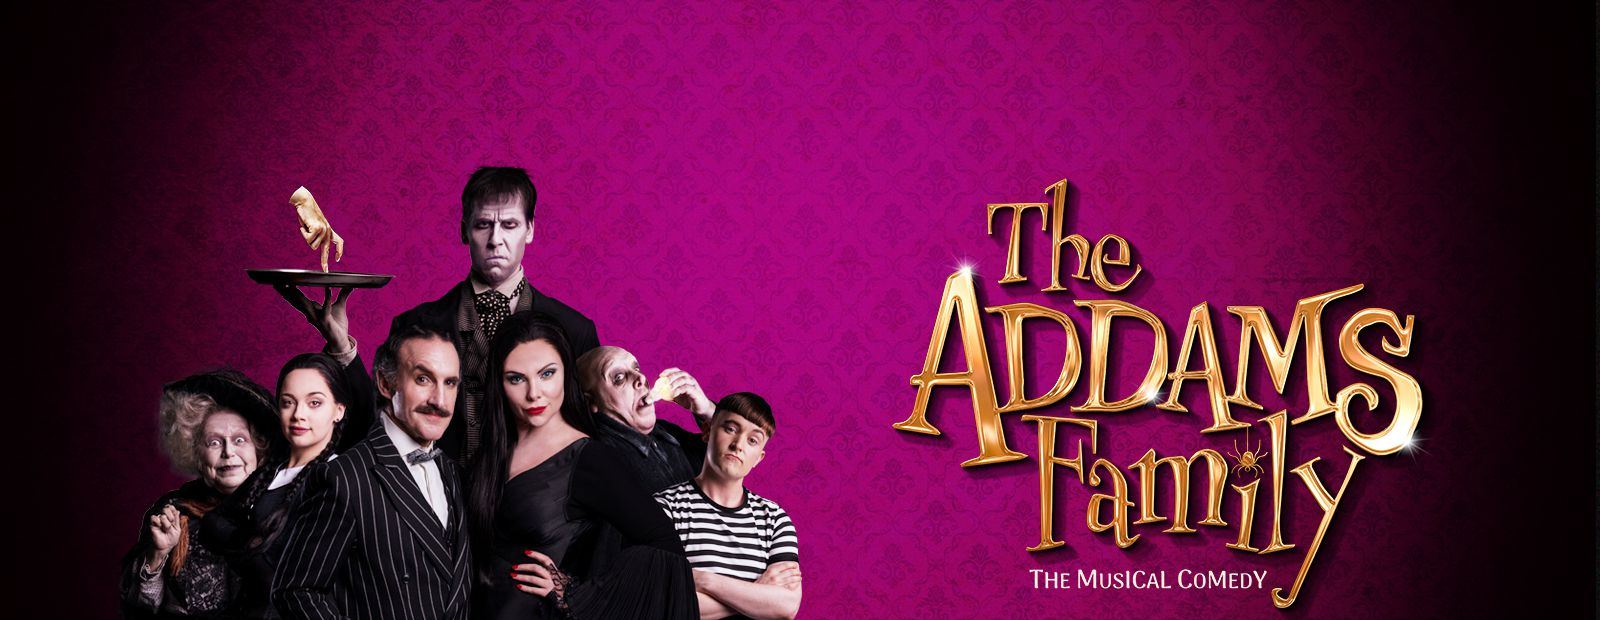 The Addams Family Musical Review By Musical Theatre Musings